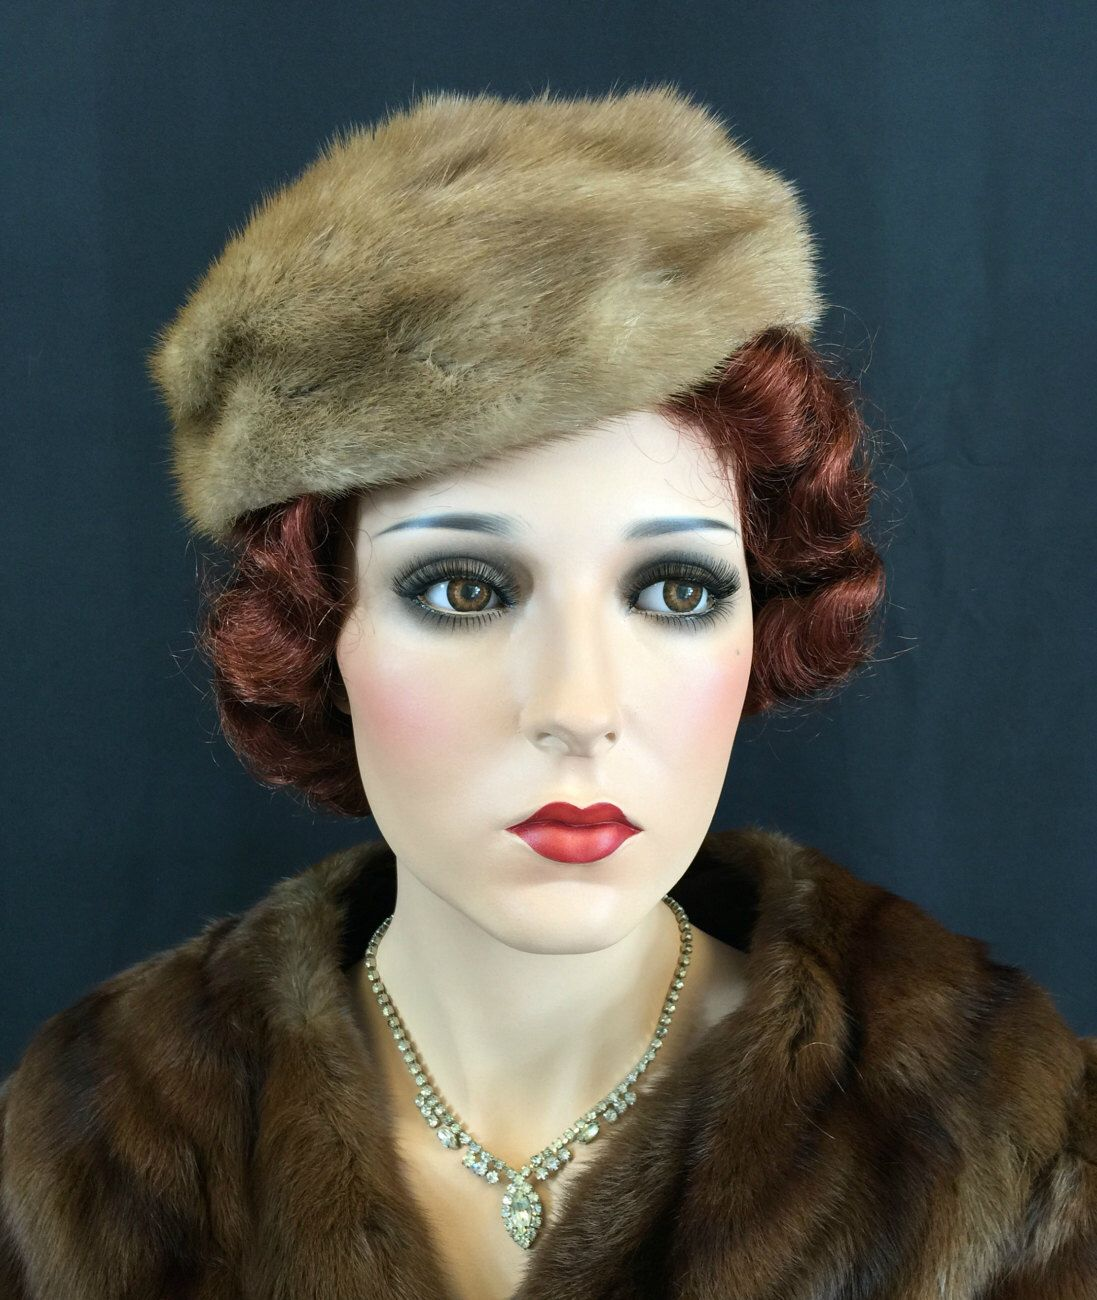 Items similar to CLOSING SHOP SALE Vintage 1950s Hat Mink Brown Fur Mink Beret 50s Topper Toque wool interior up to 23 head size 14-4 on Etsy